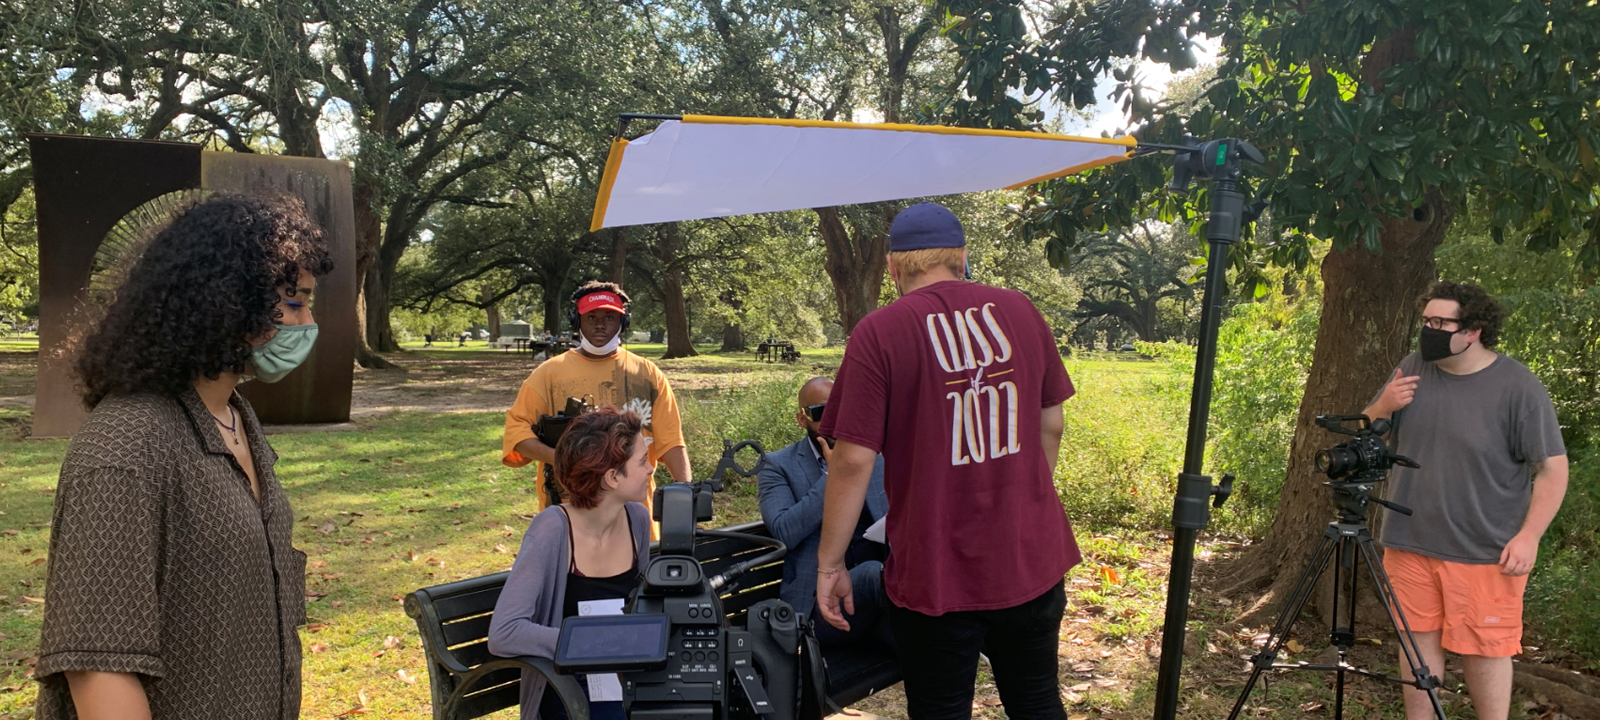 During COVID, Loyola students learned and implemented a subset of SAG and IATSE safety standards and produced films safely with no outbreaks.